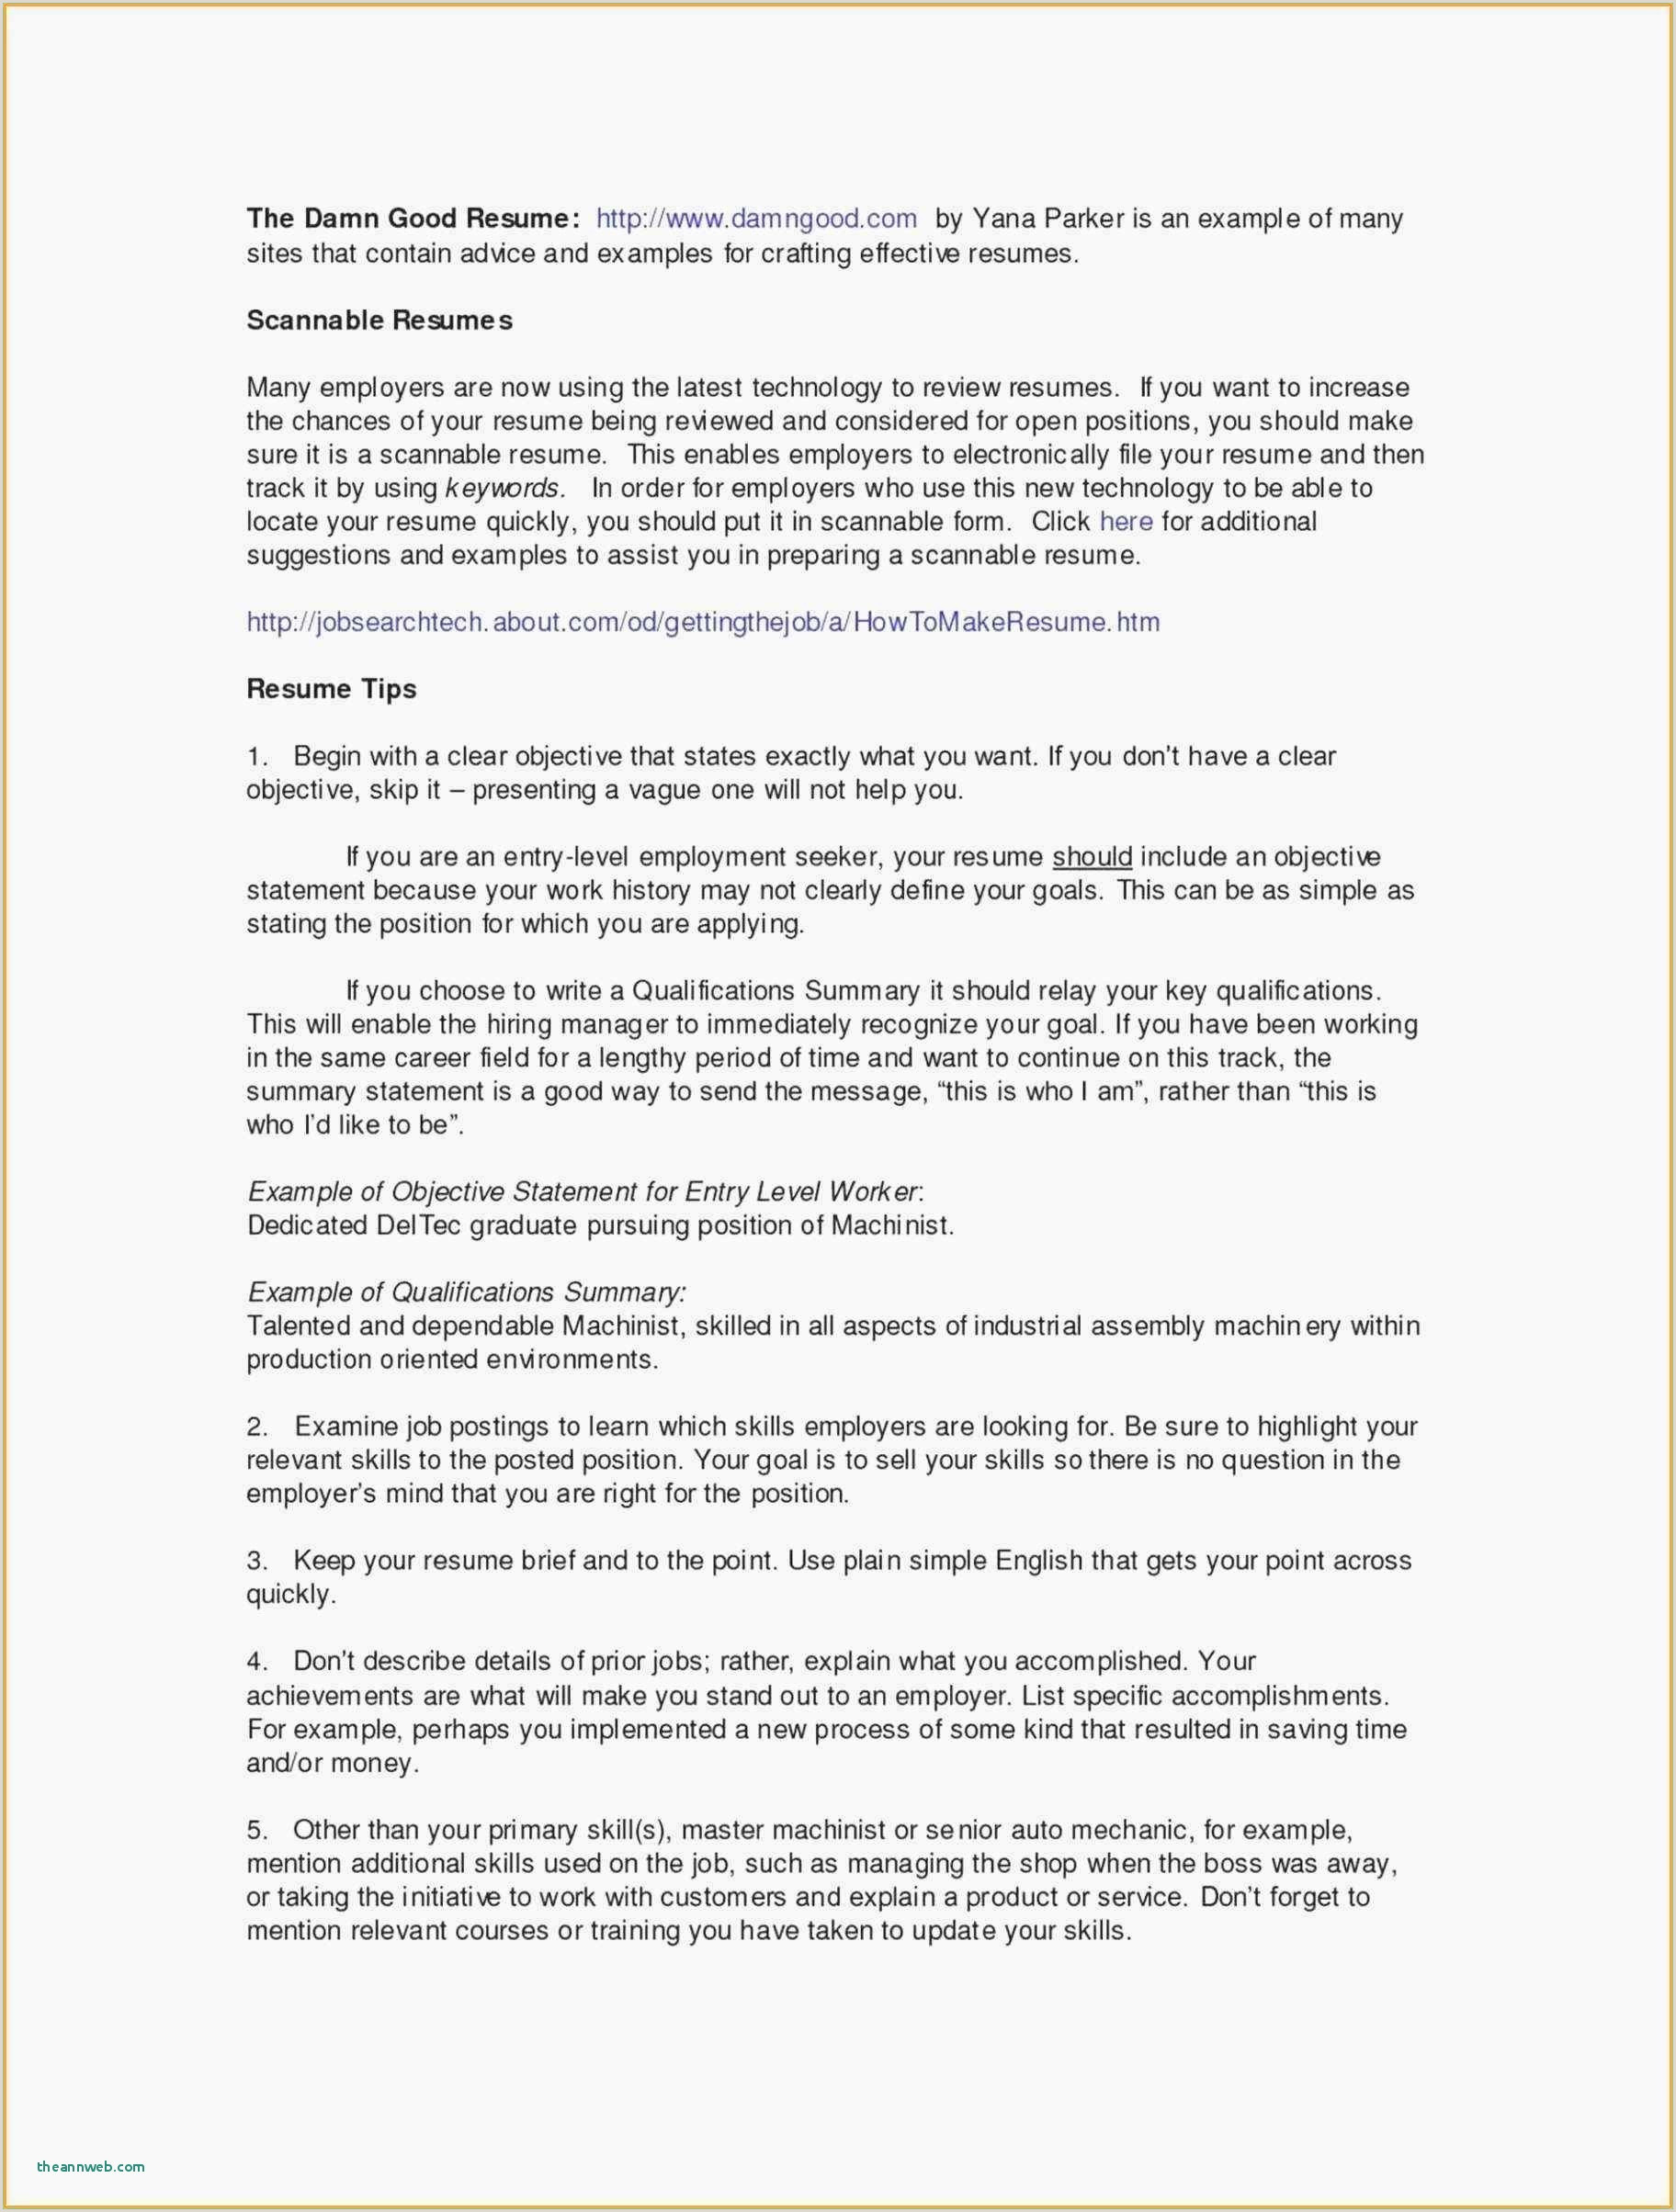 Cv format for Legal Jobs 10 Writing Sample for Paralegal Job